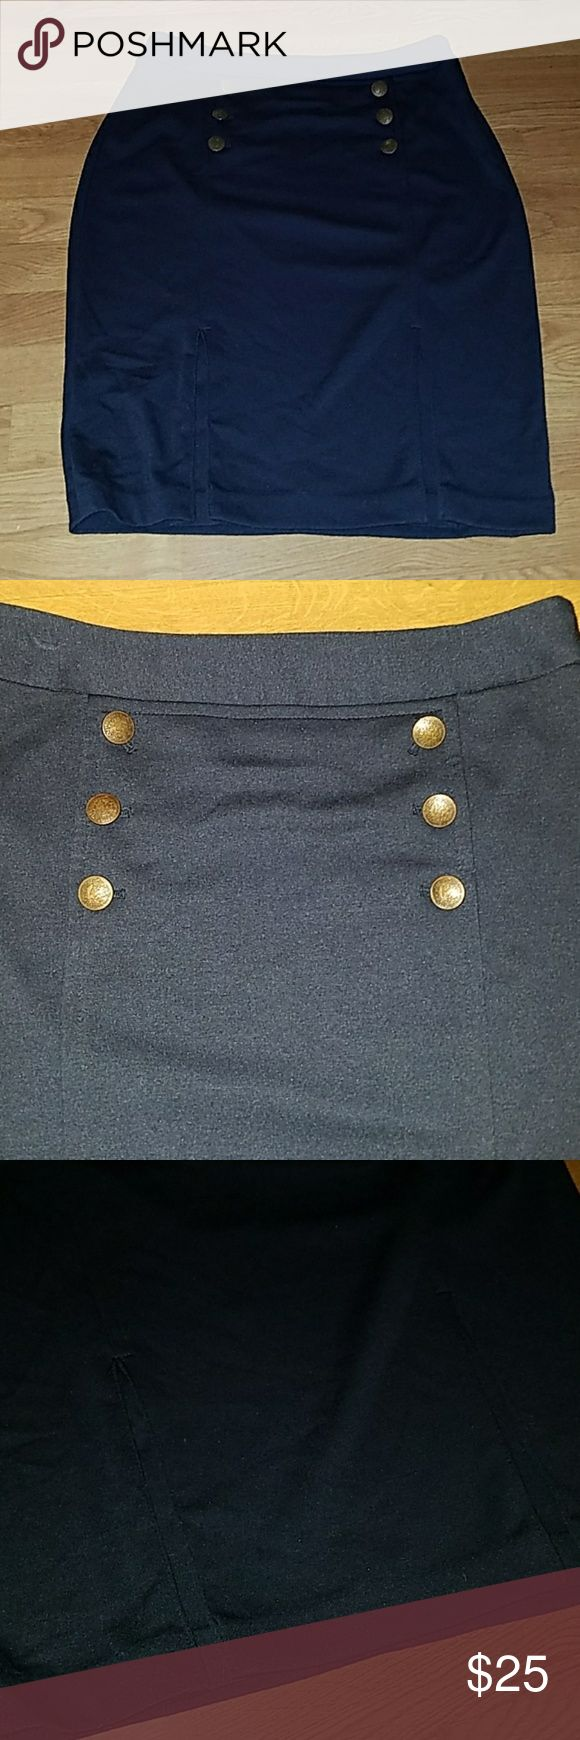 EUC Navy Pencil Skirt with buttons Super cute & comfy navy pencil skirt with mock splits for a little flair. 24.5 in length The Limited Skirts Pencil